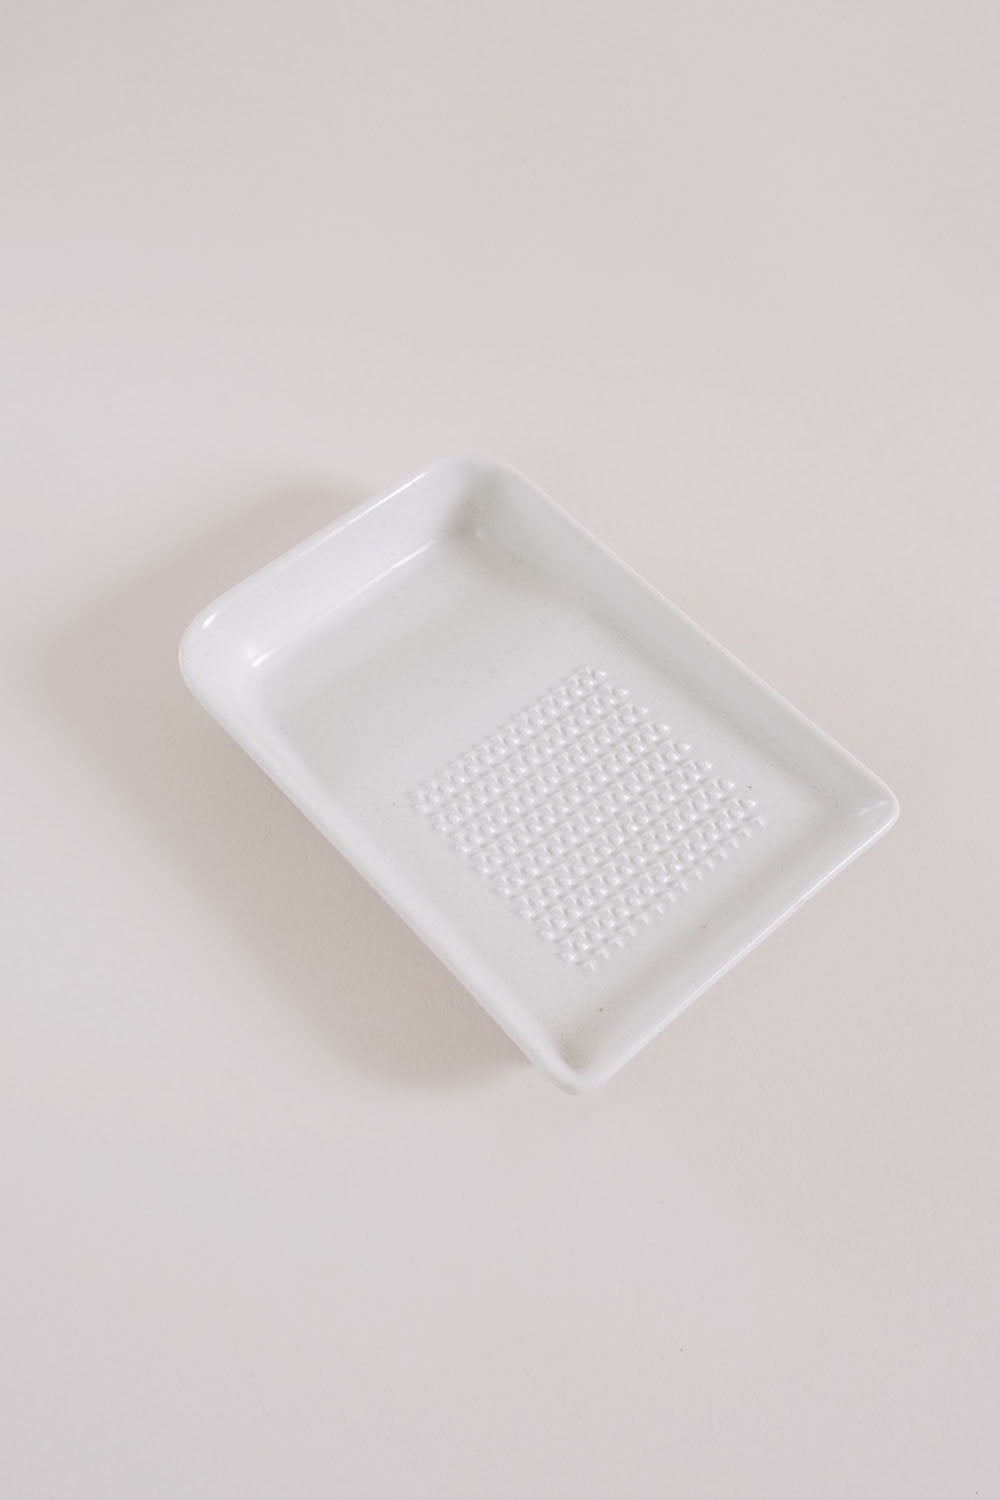 Ceramic Wasabi/Ginger Grater - White